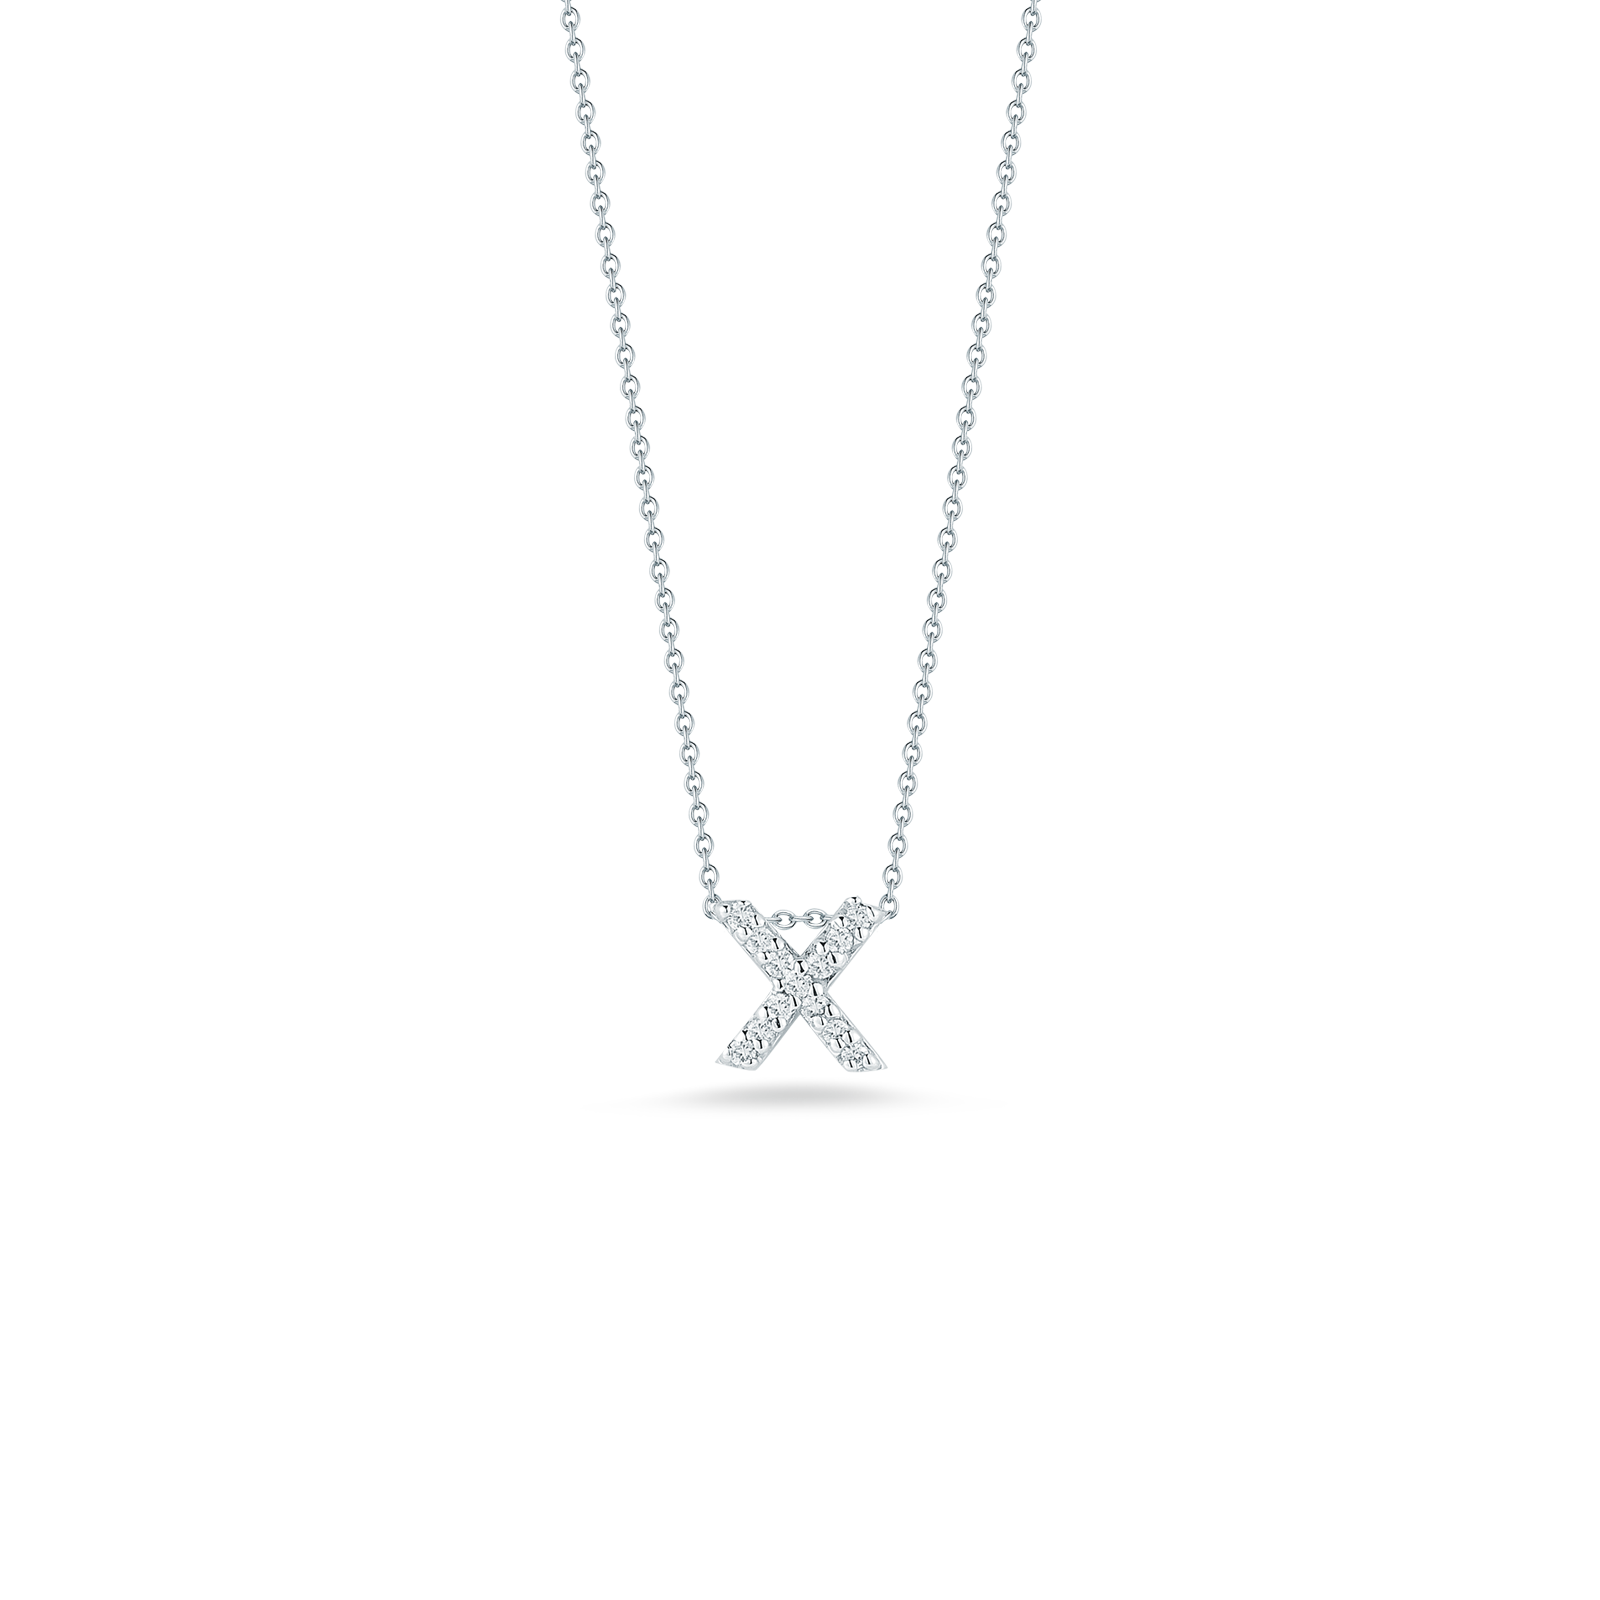 Tiny treasures love letter x pendant with diamonds dp25c0671 diamond pendants and necklaces product detail httpwarejewelersuploadproductroberto mozeypictures Choice Image